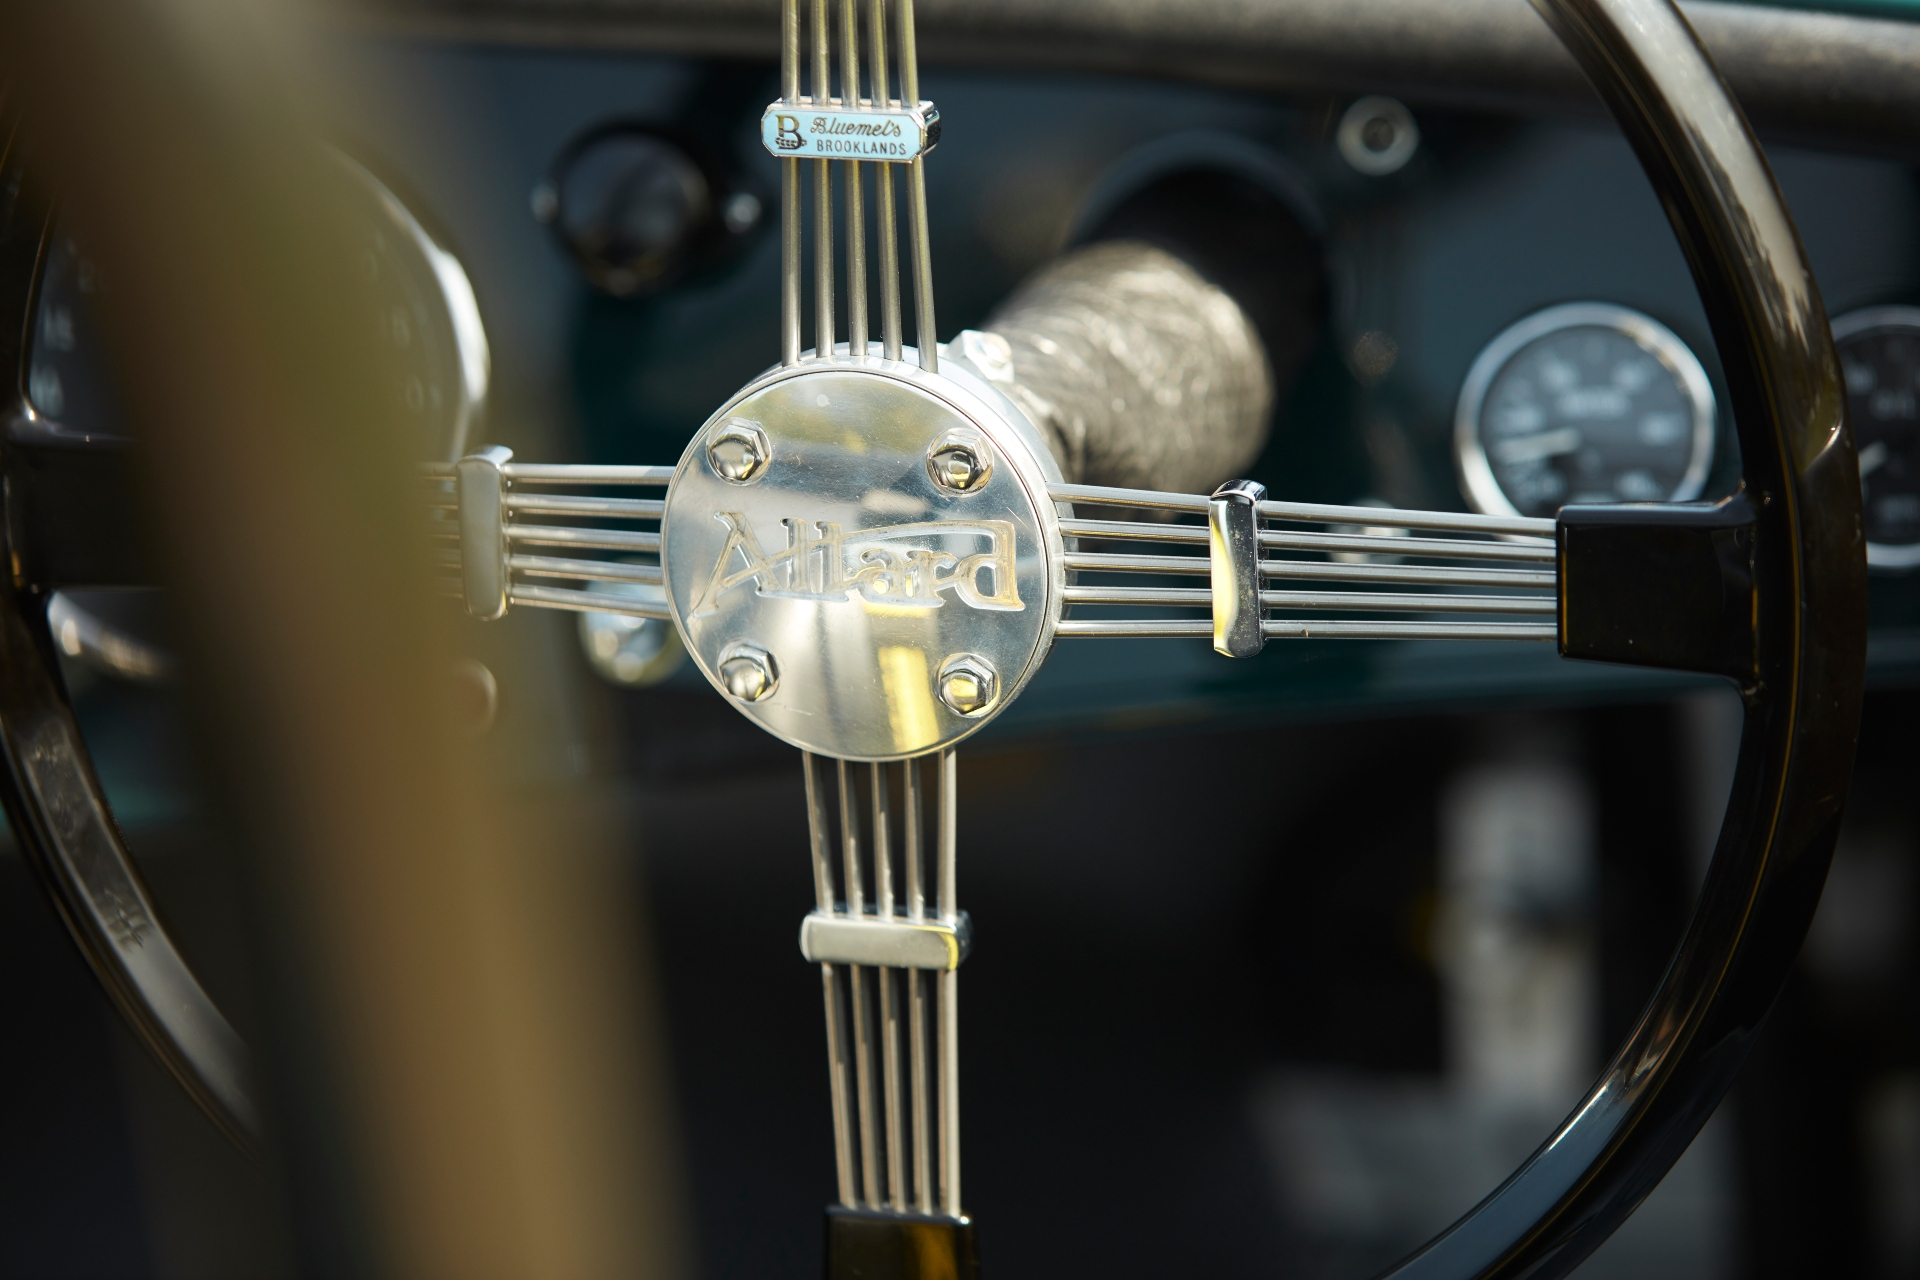 Allard JR continuation car steering wheel detail